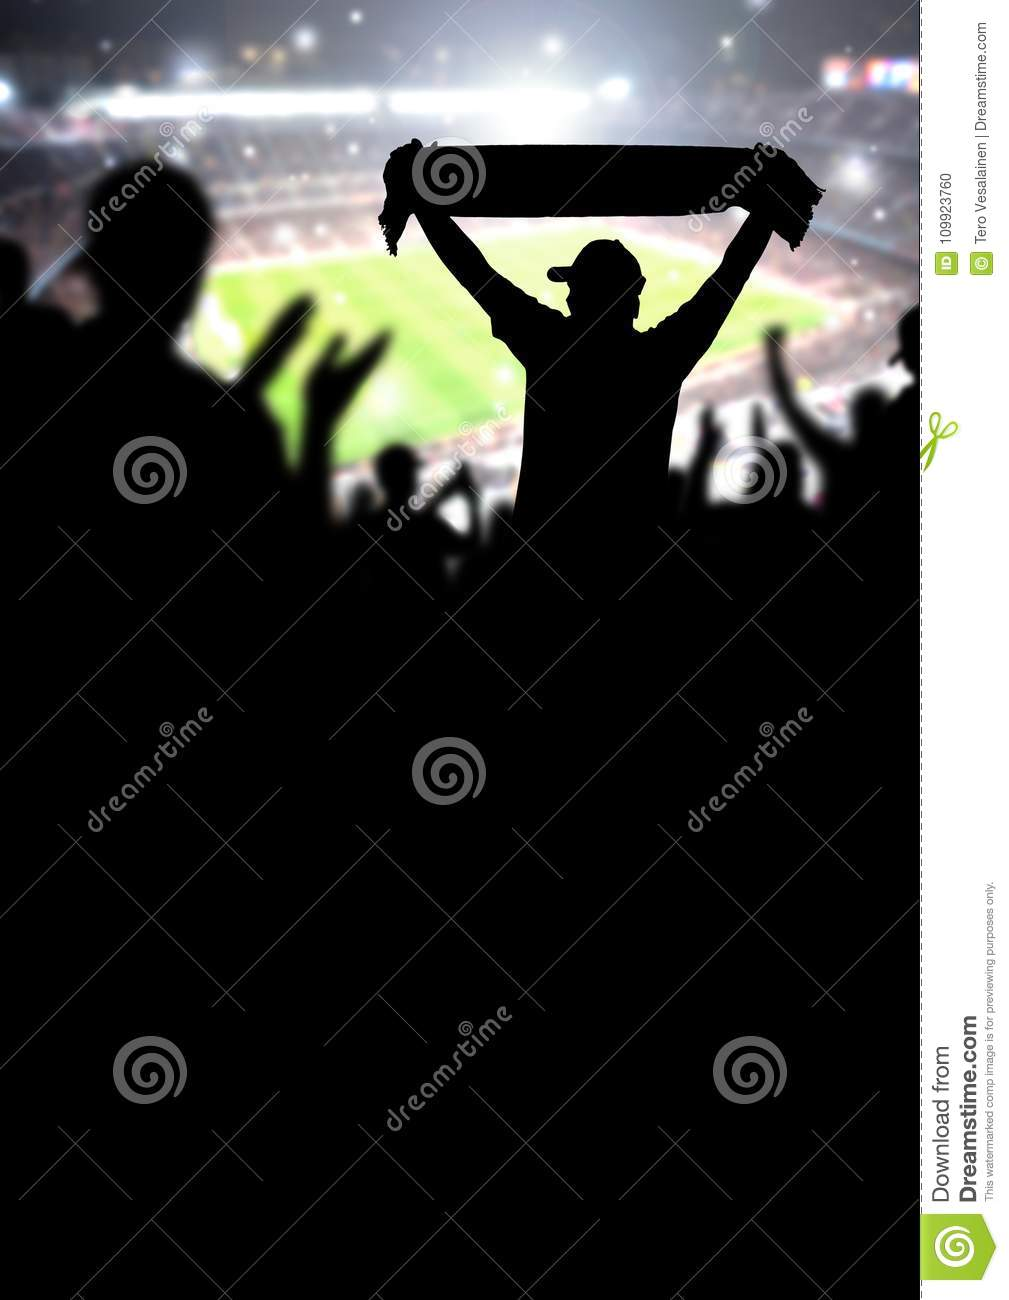 Football fans or soccer crowd background. Silhouette people in s